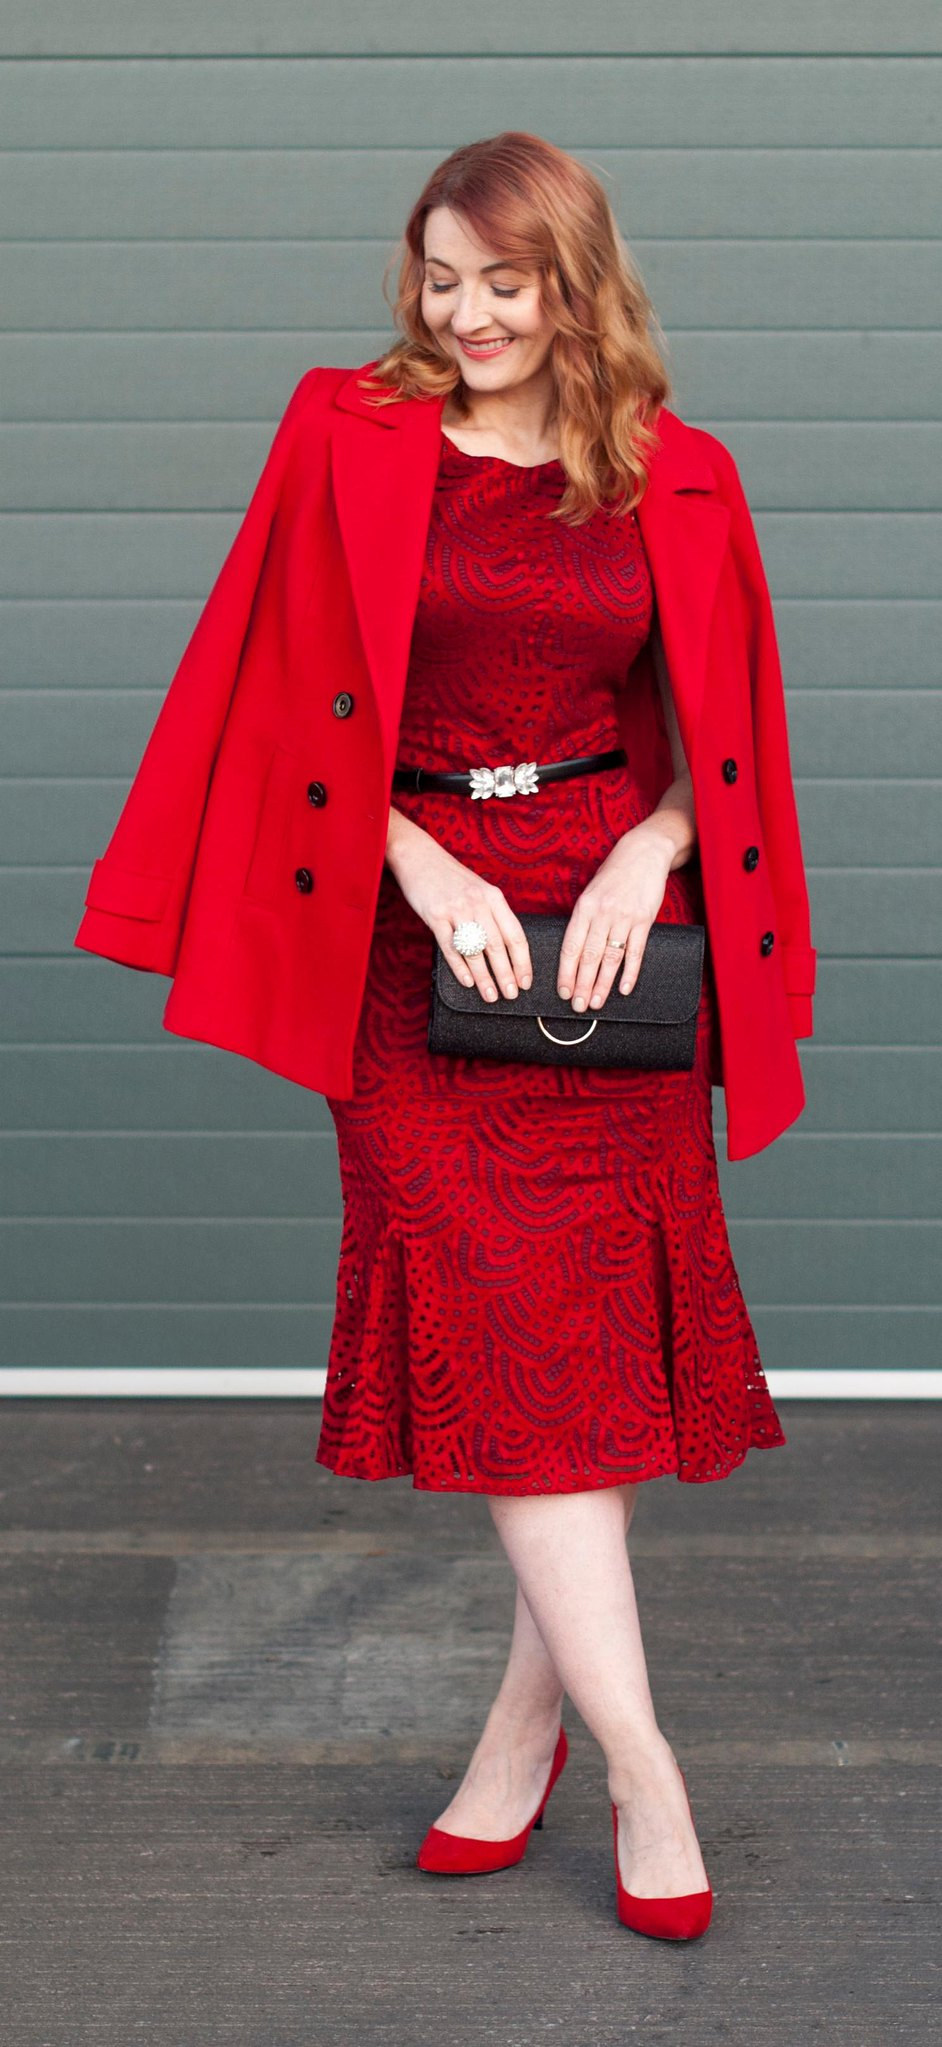 Christmas party or New Year's Eve party outfit - red lace midi dress with red pea coat and red heels | Not Dressed As Lamb, over 40 style